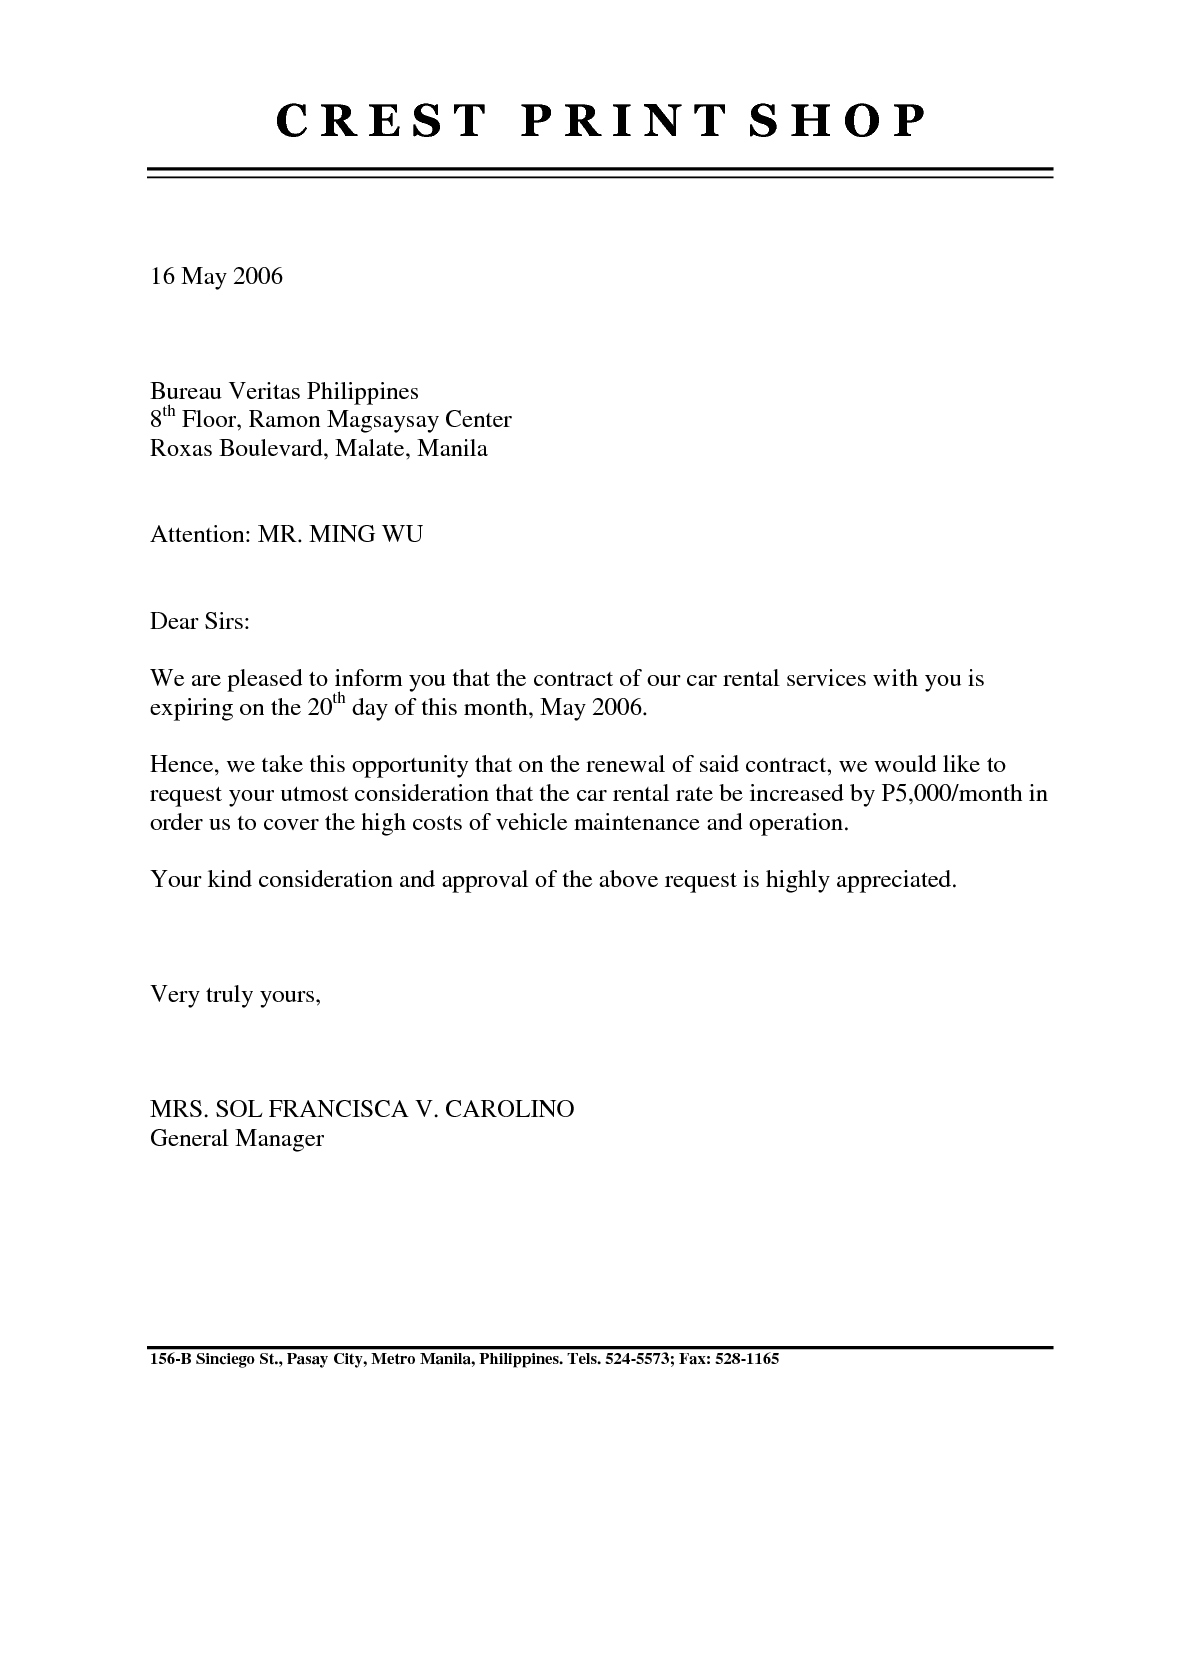 Lease Renewal Letter Gplusnick Sample Business Wfmoiy  Home